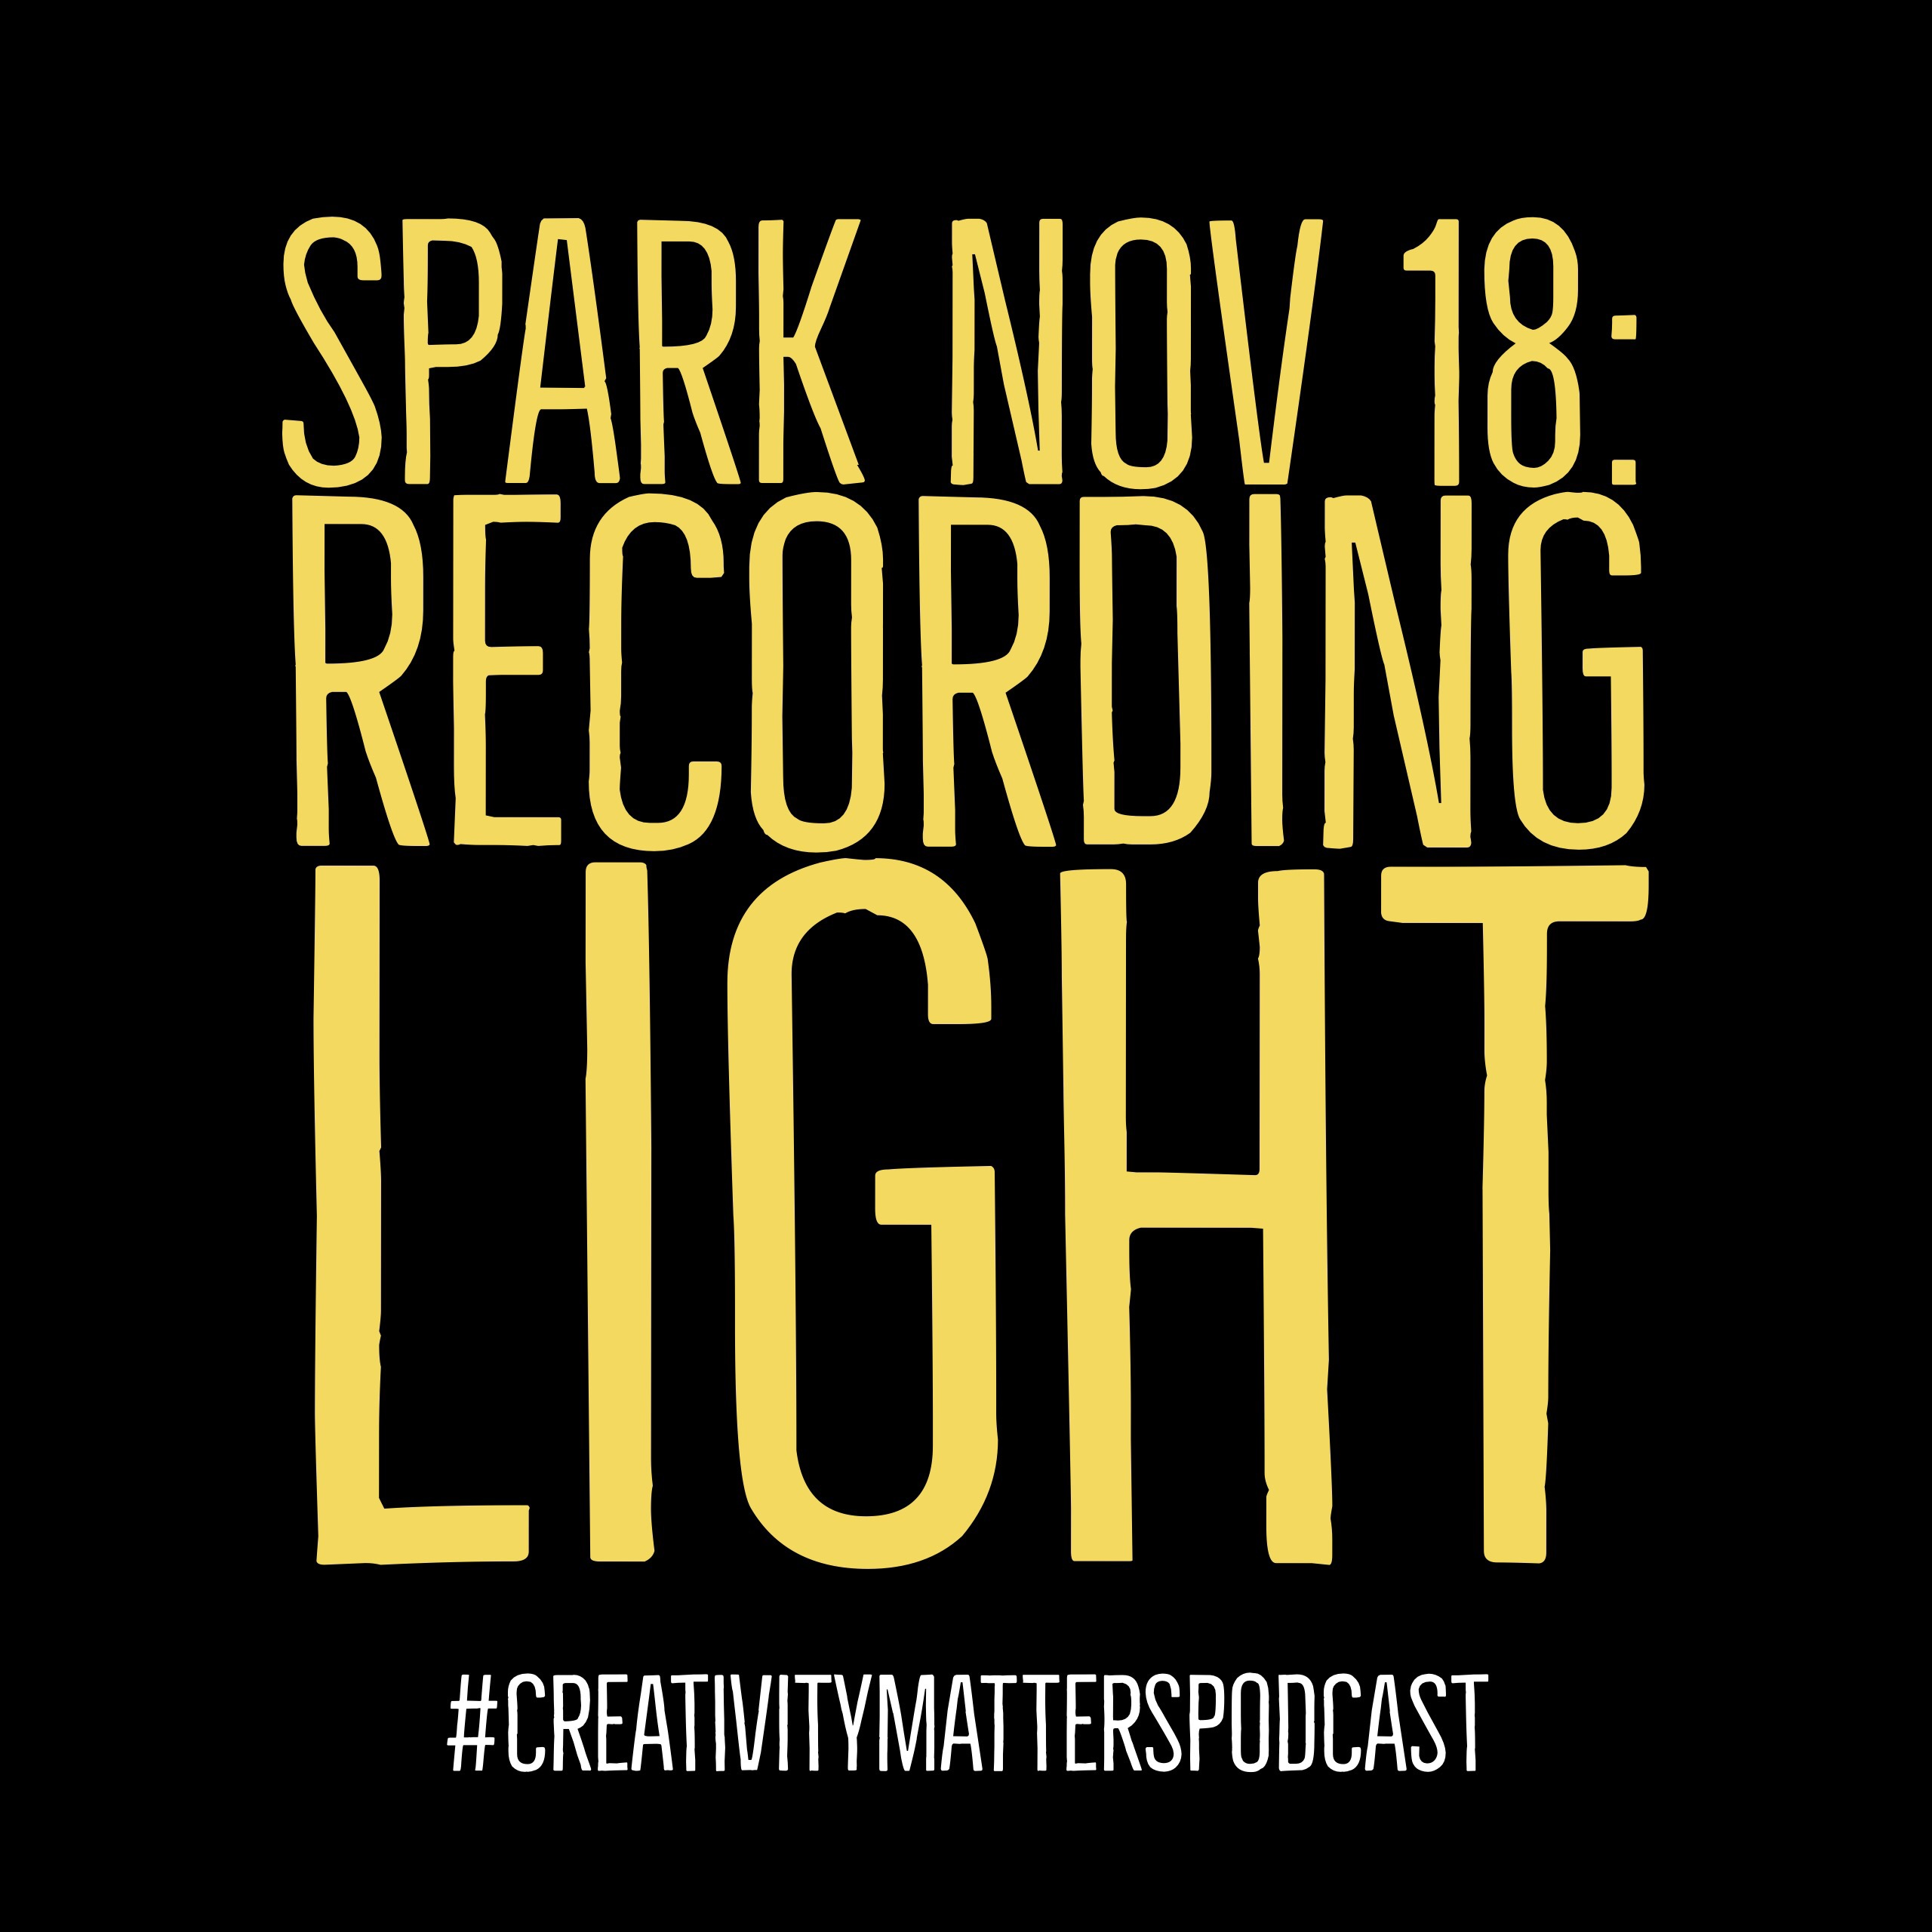 Spark Nov 18: Recording Light